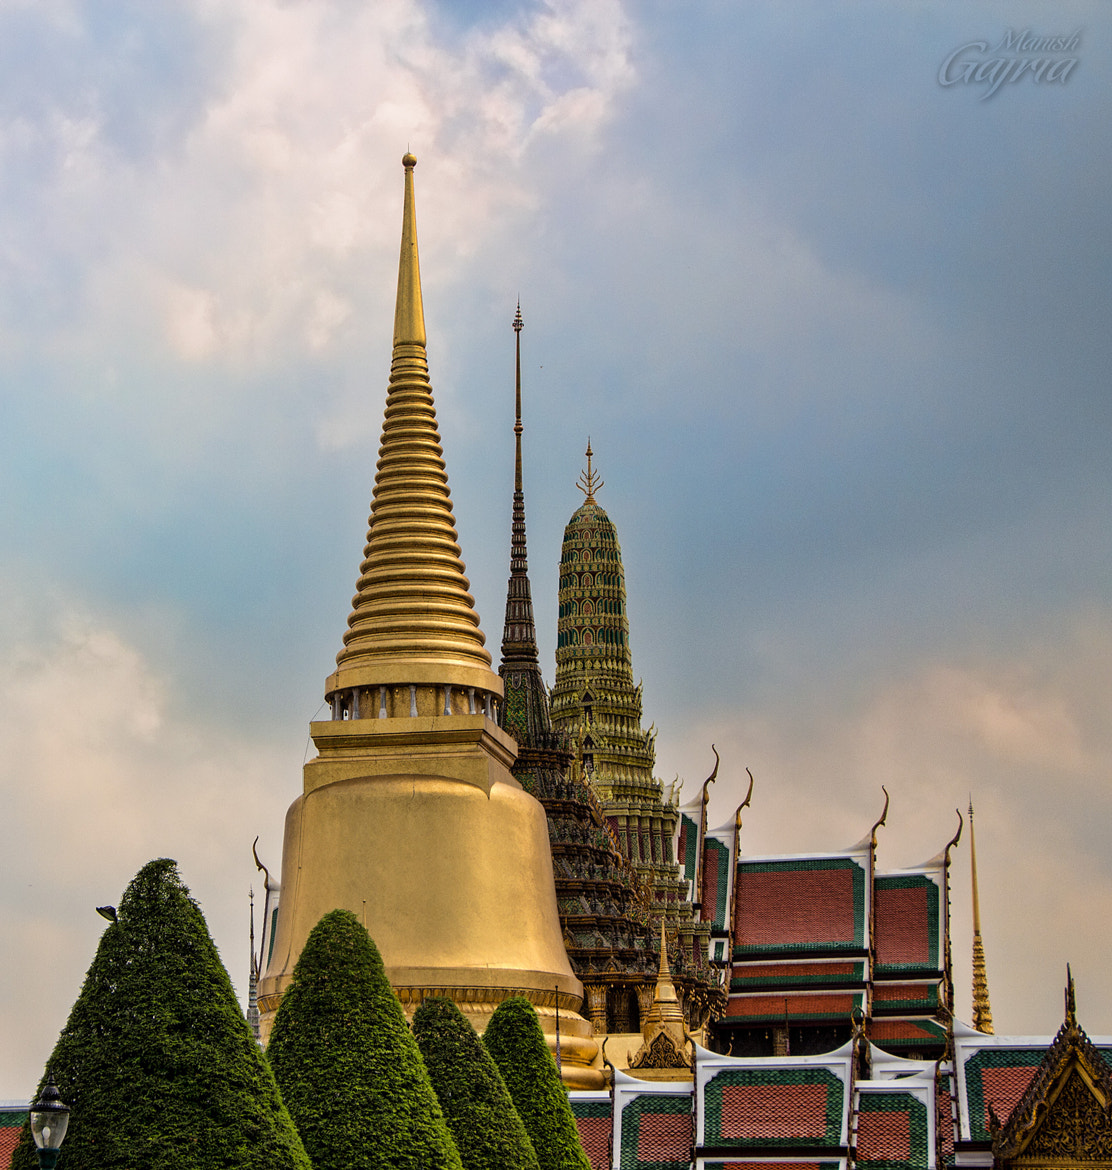 Photograph Grand Palace by Manish Gajria on 500px